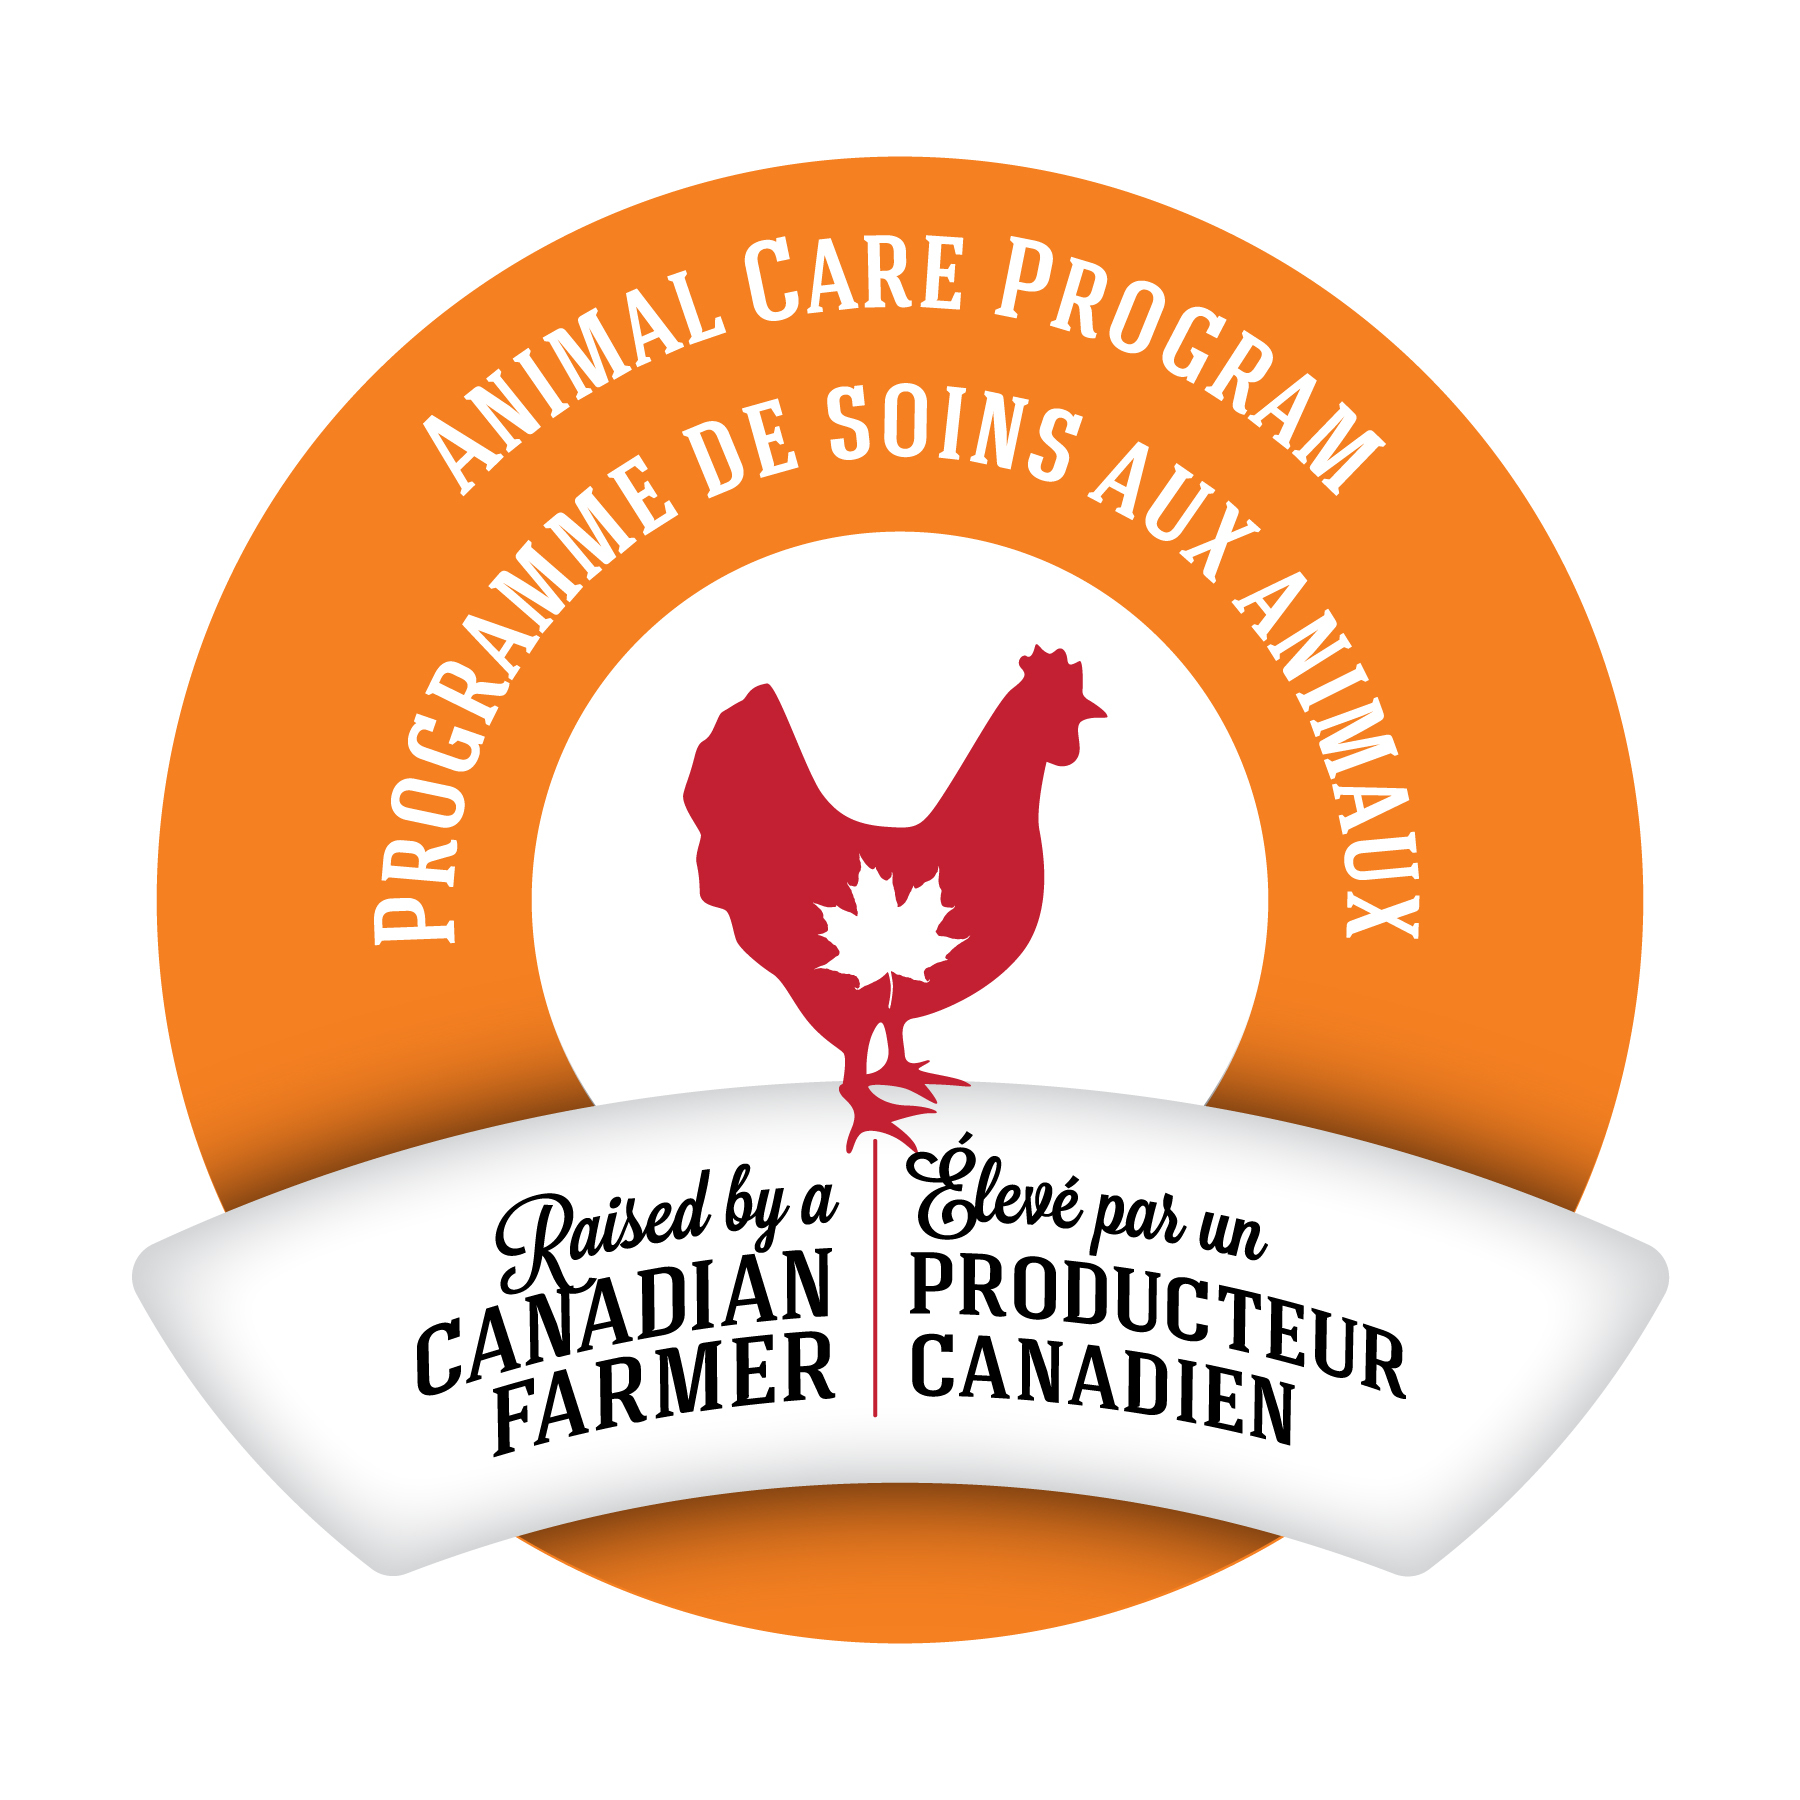 Raised By A Canadian Farmer Animal Care Program  image